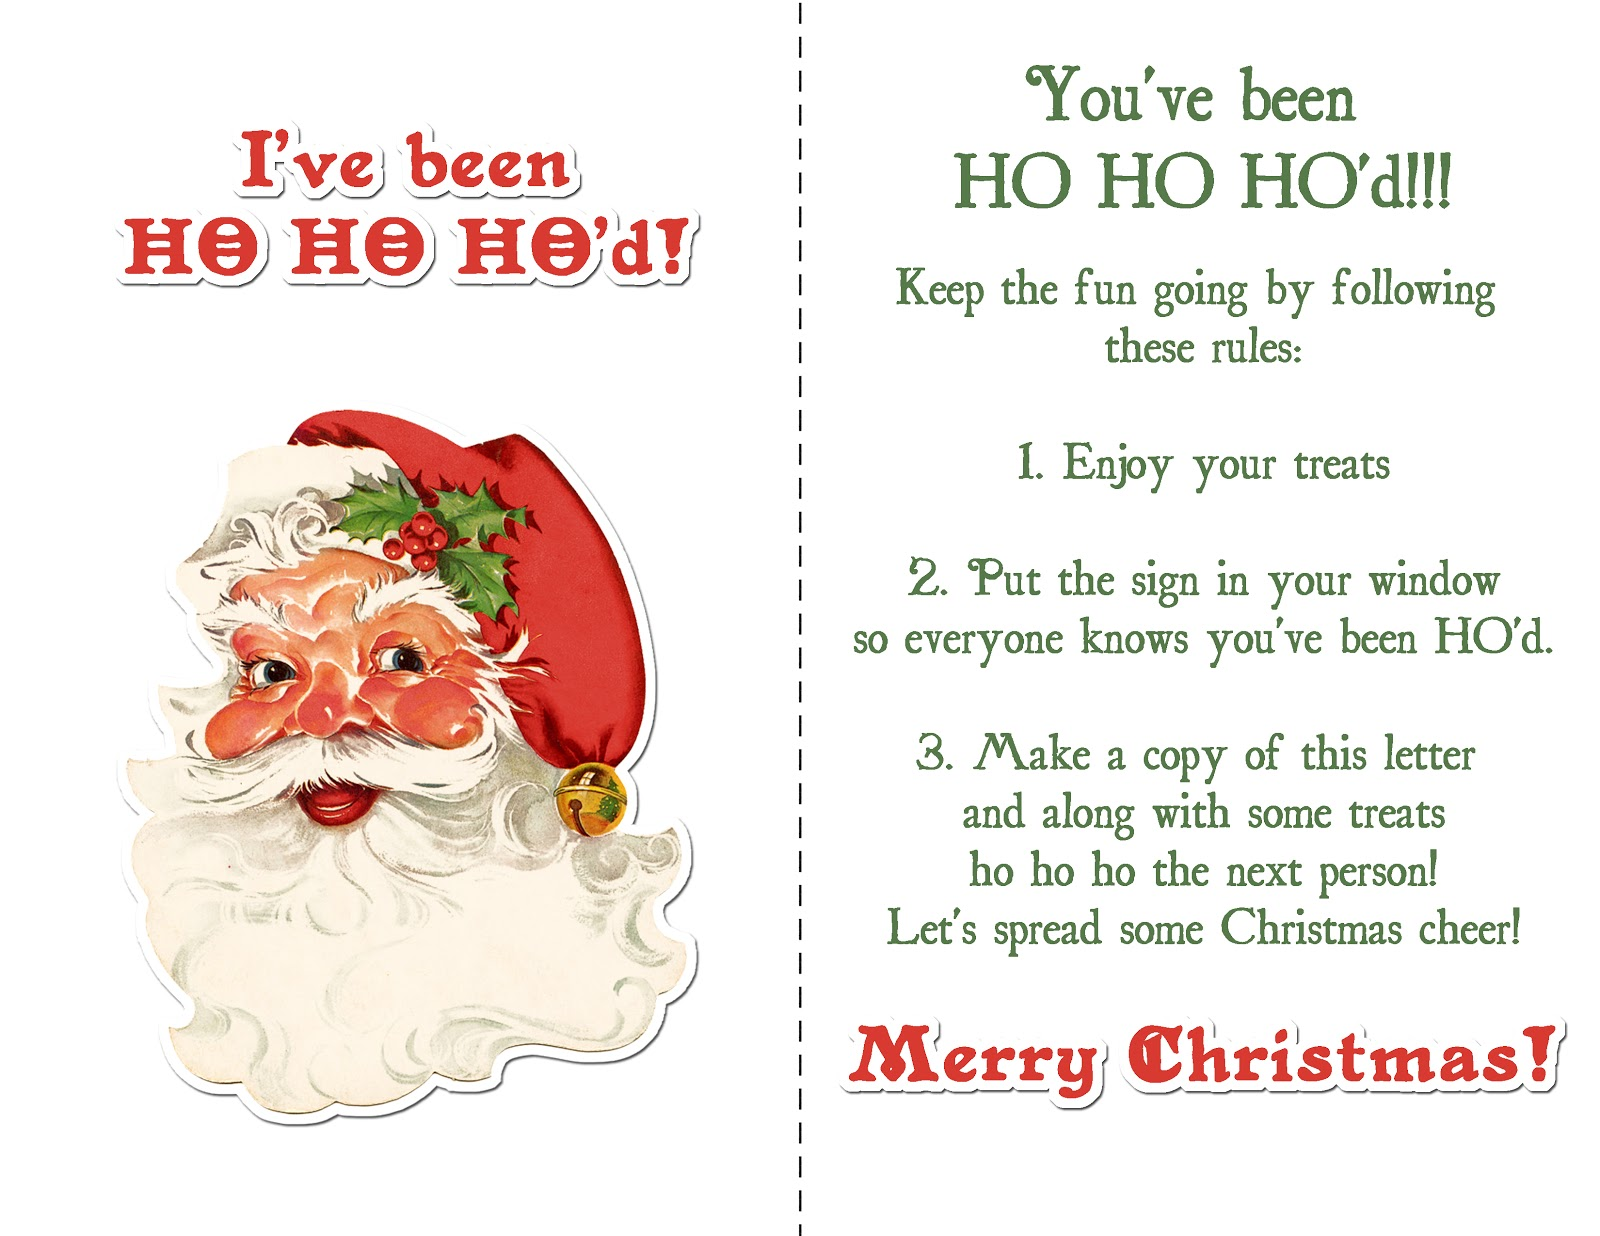 christmas cheer around and couldnt find a ive been ho ho hod sign so made this one up the santa element is from sahlin studios collab kit with - Santa Hohoho 2